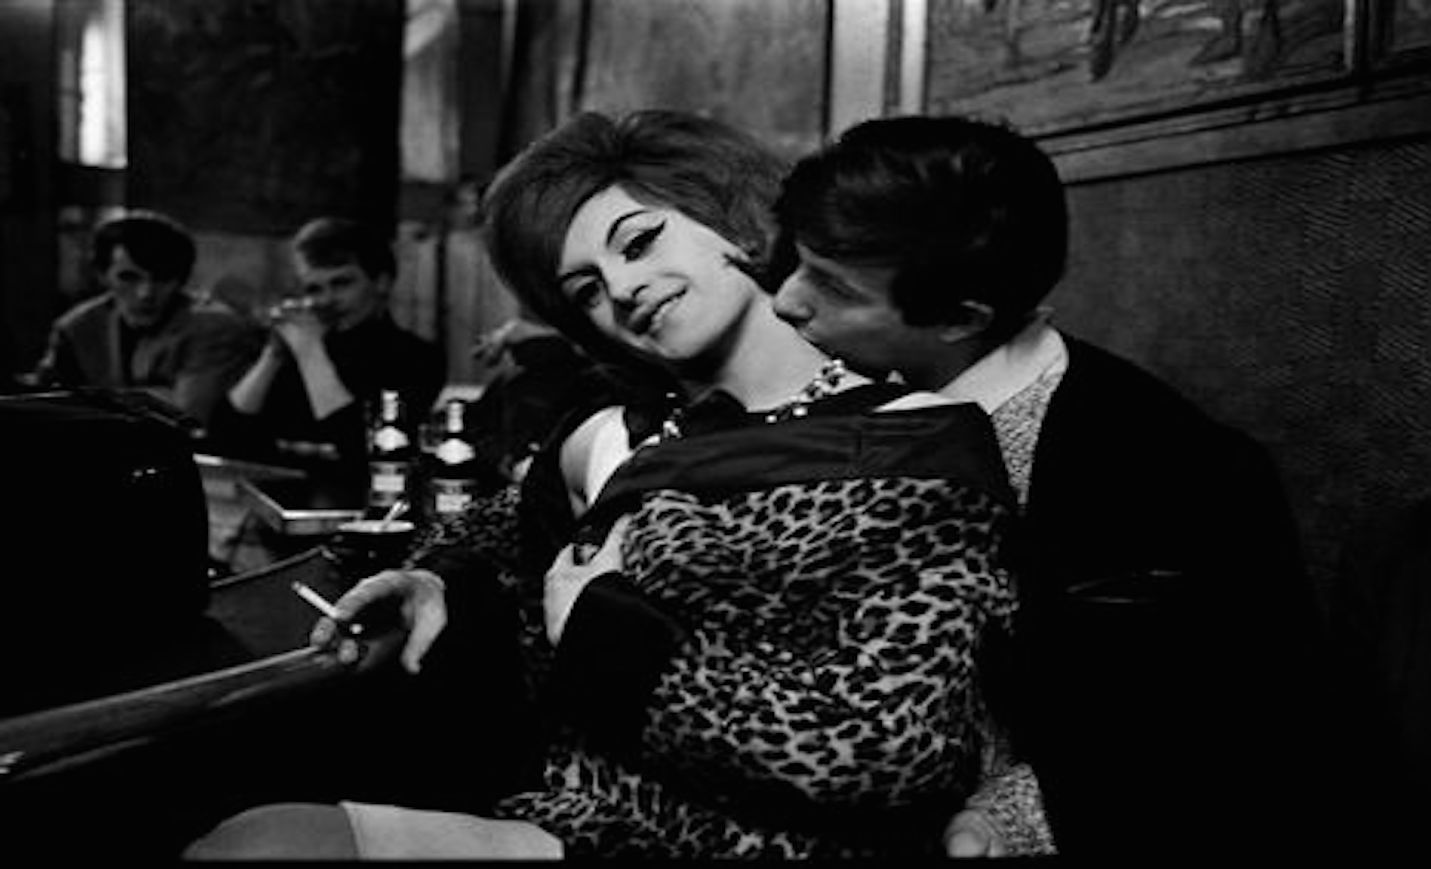 Beautiful Black & White Photographs of Parisian Prostitutes from 1950s-60s (3)